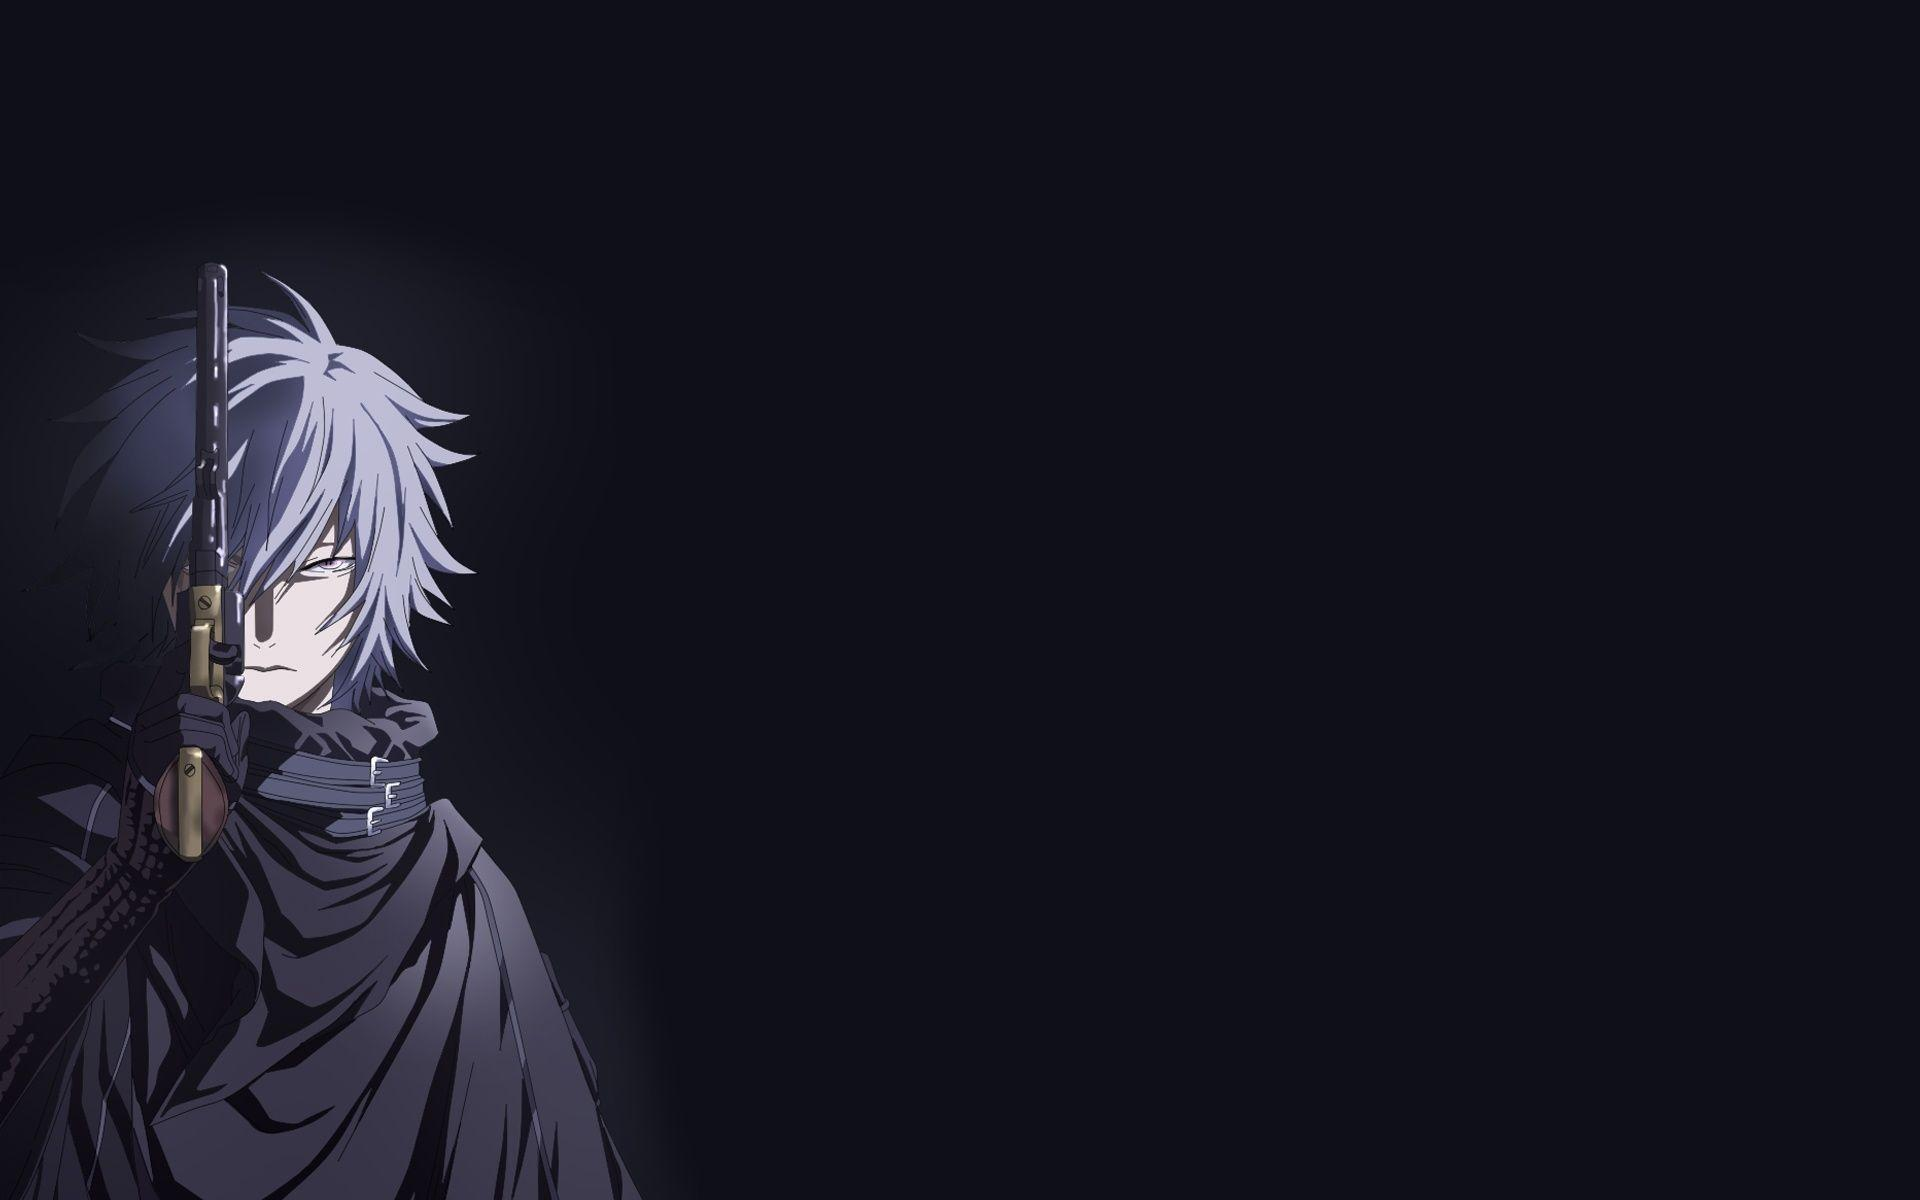 Anime Wallpaper Black